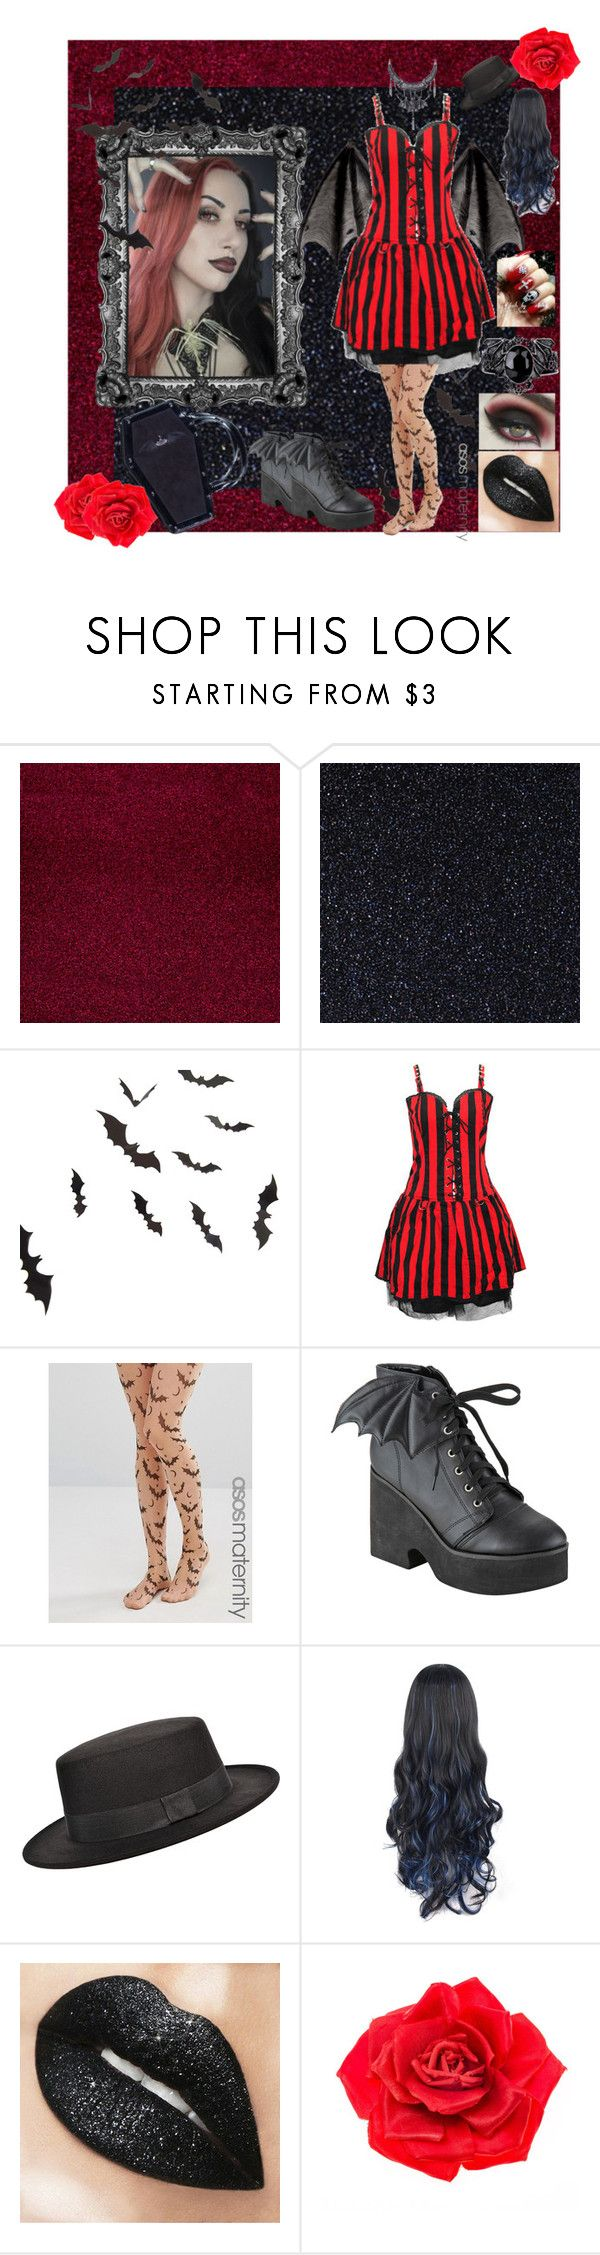 """""""Bats Day with Ash Costello!"""" by alishataylor ❤ liked on Polyvore featuring ASOS, Iron Fist and Johnny Loves Rosie"""